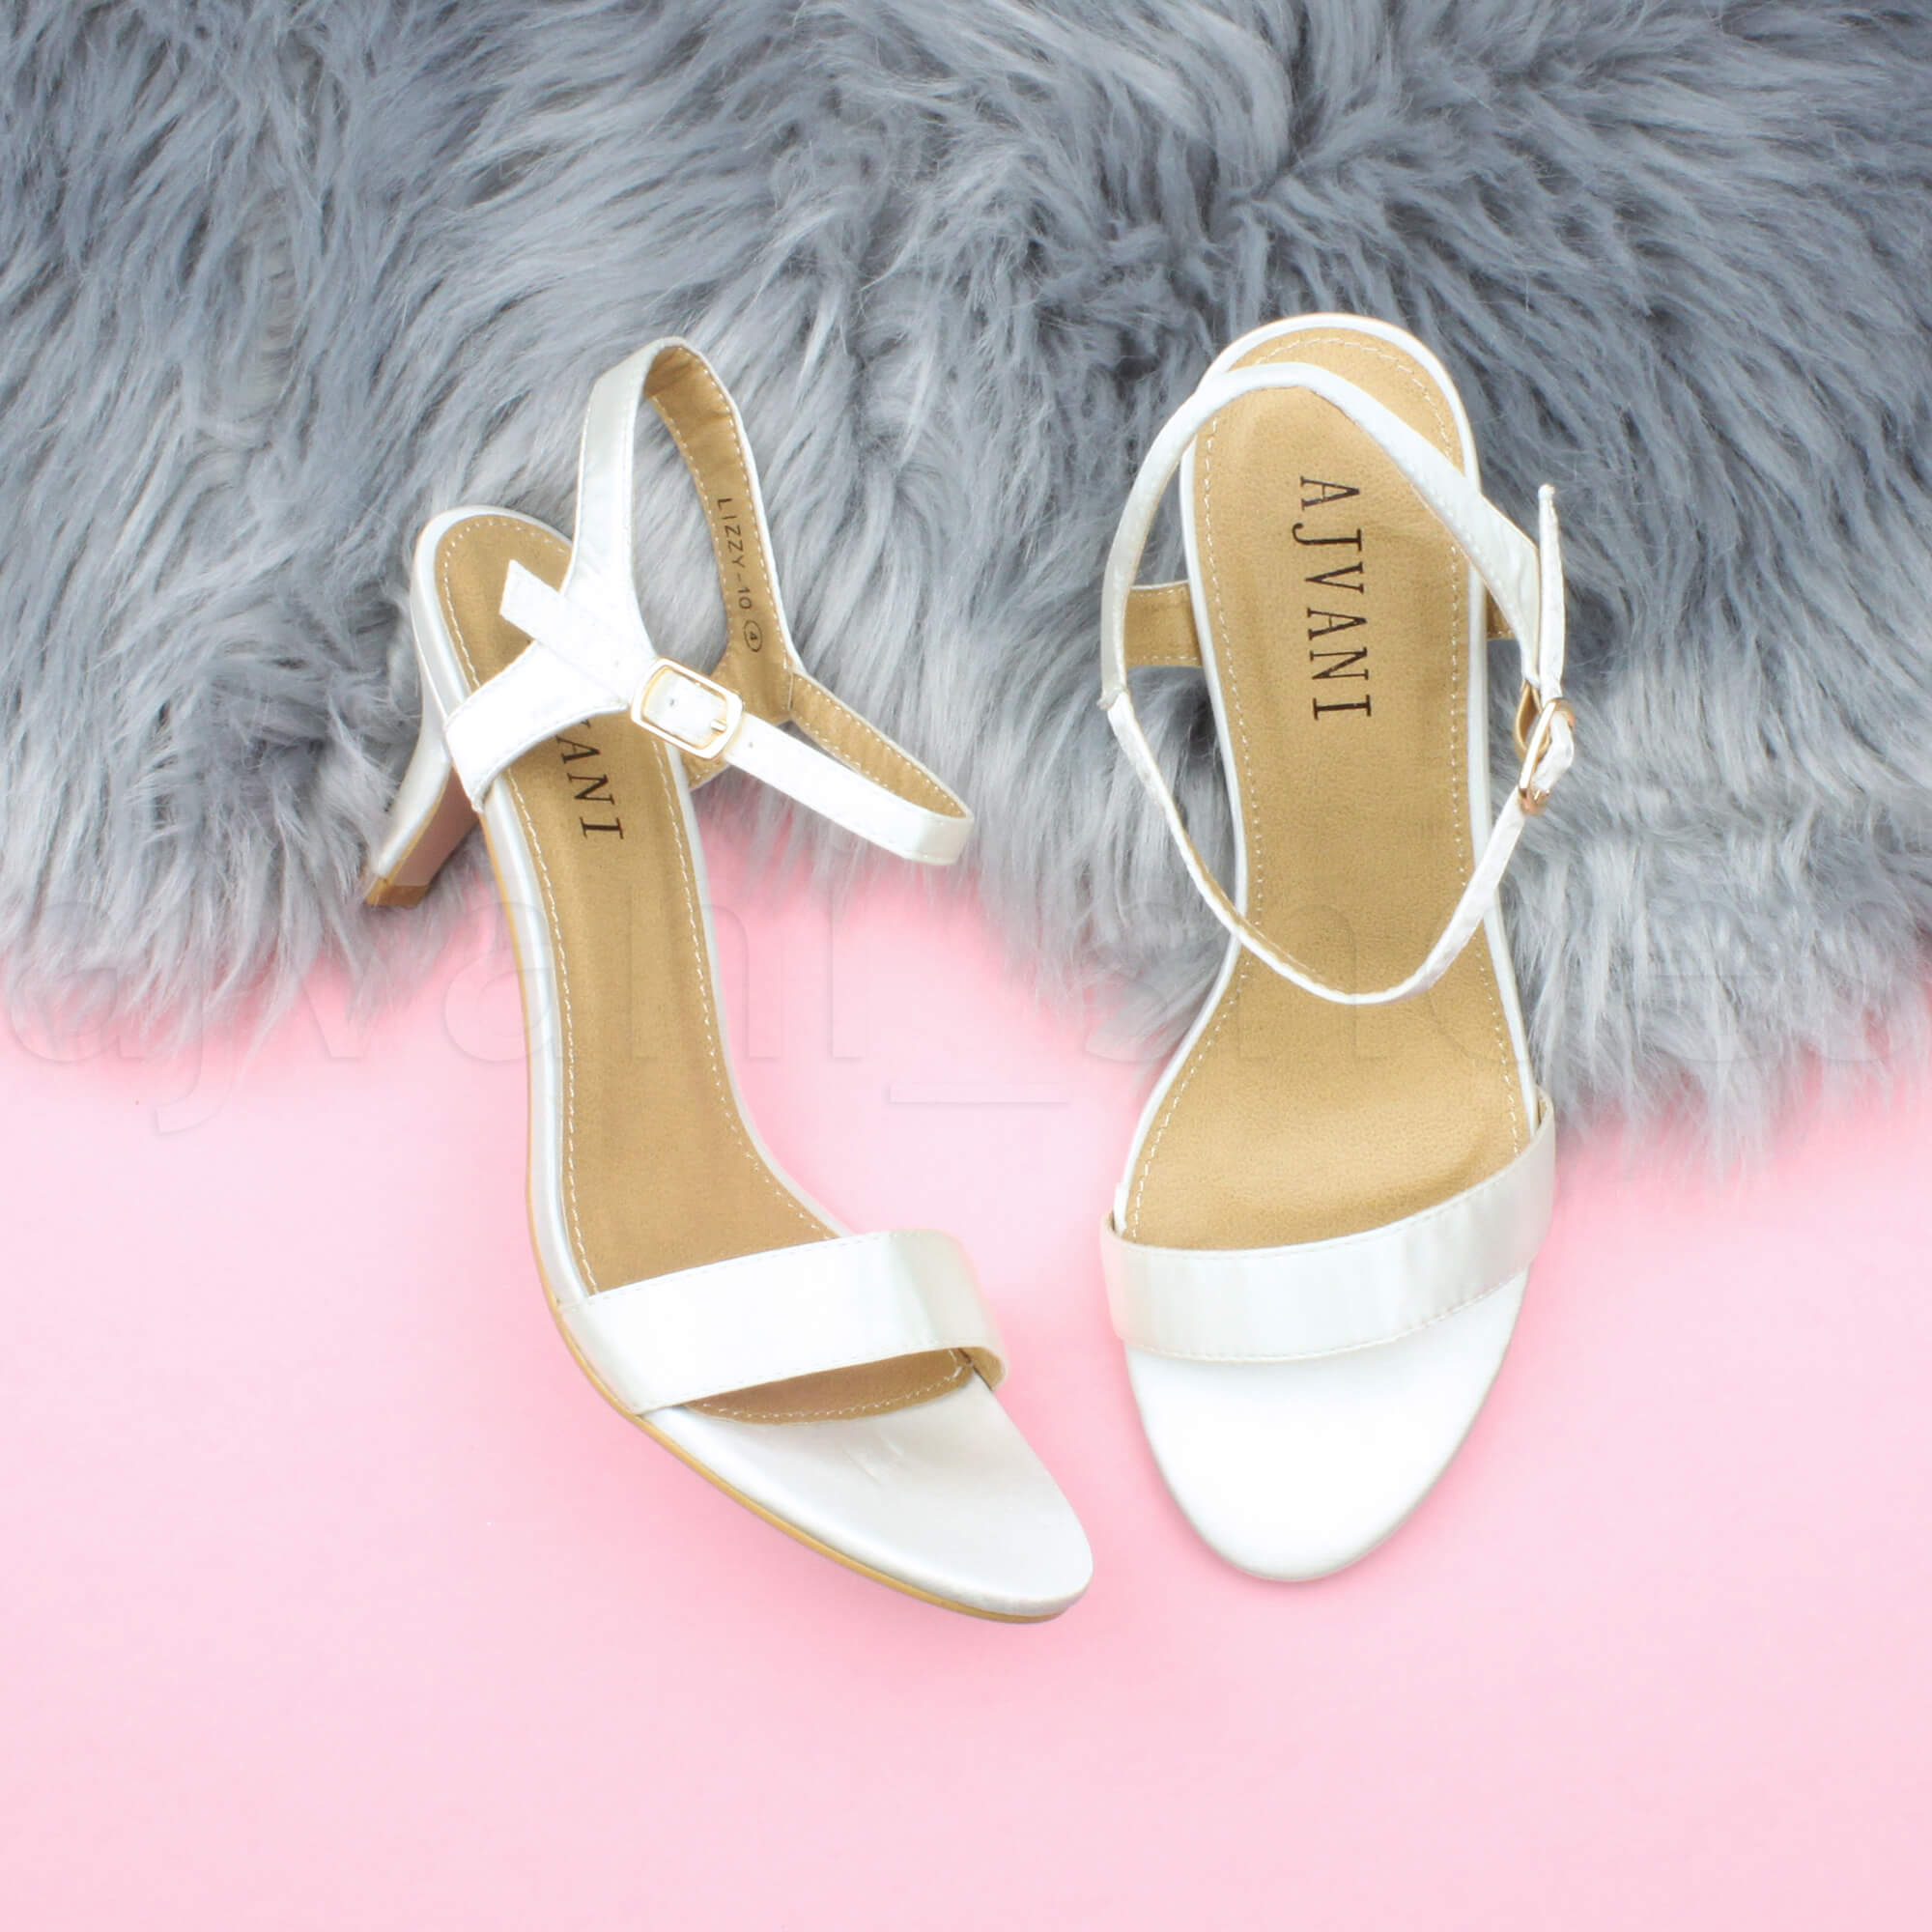 WOMENS-LADIES-HIGH-HEEL-BUCKLE-STRAPPY-BASIC-BARELY-THERE-SANDALS-SHOES-SIZE thumbnail 54